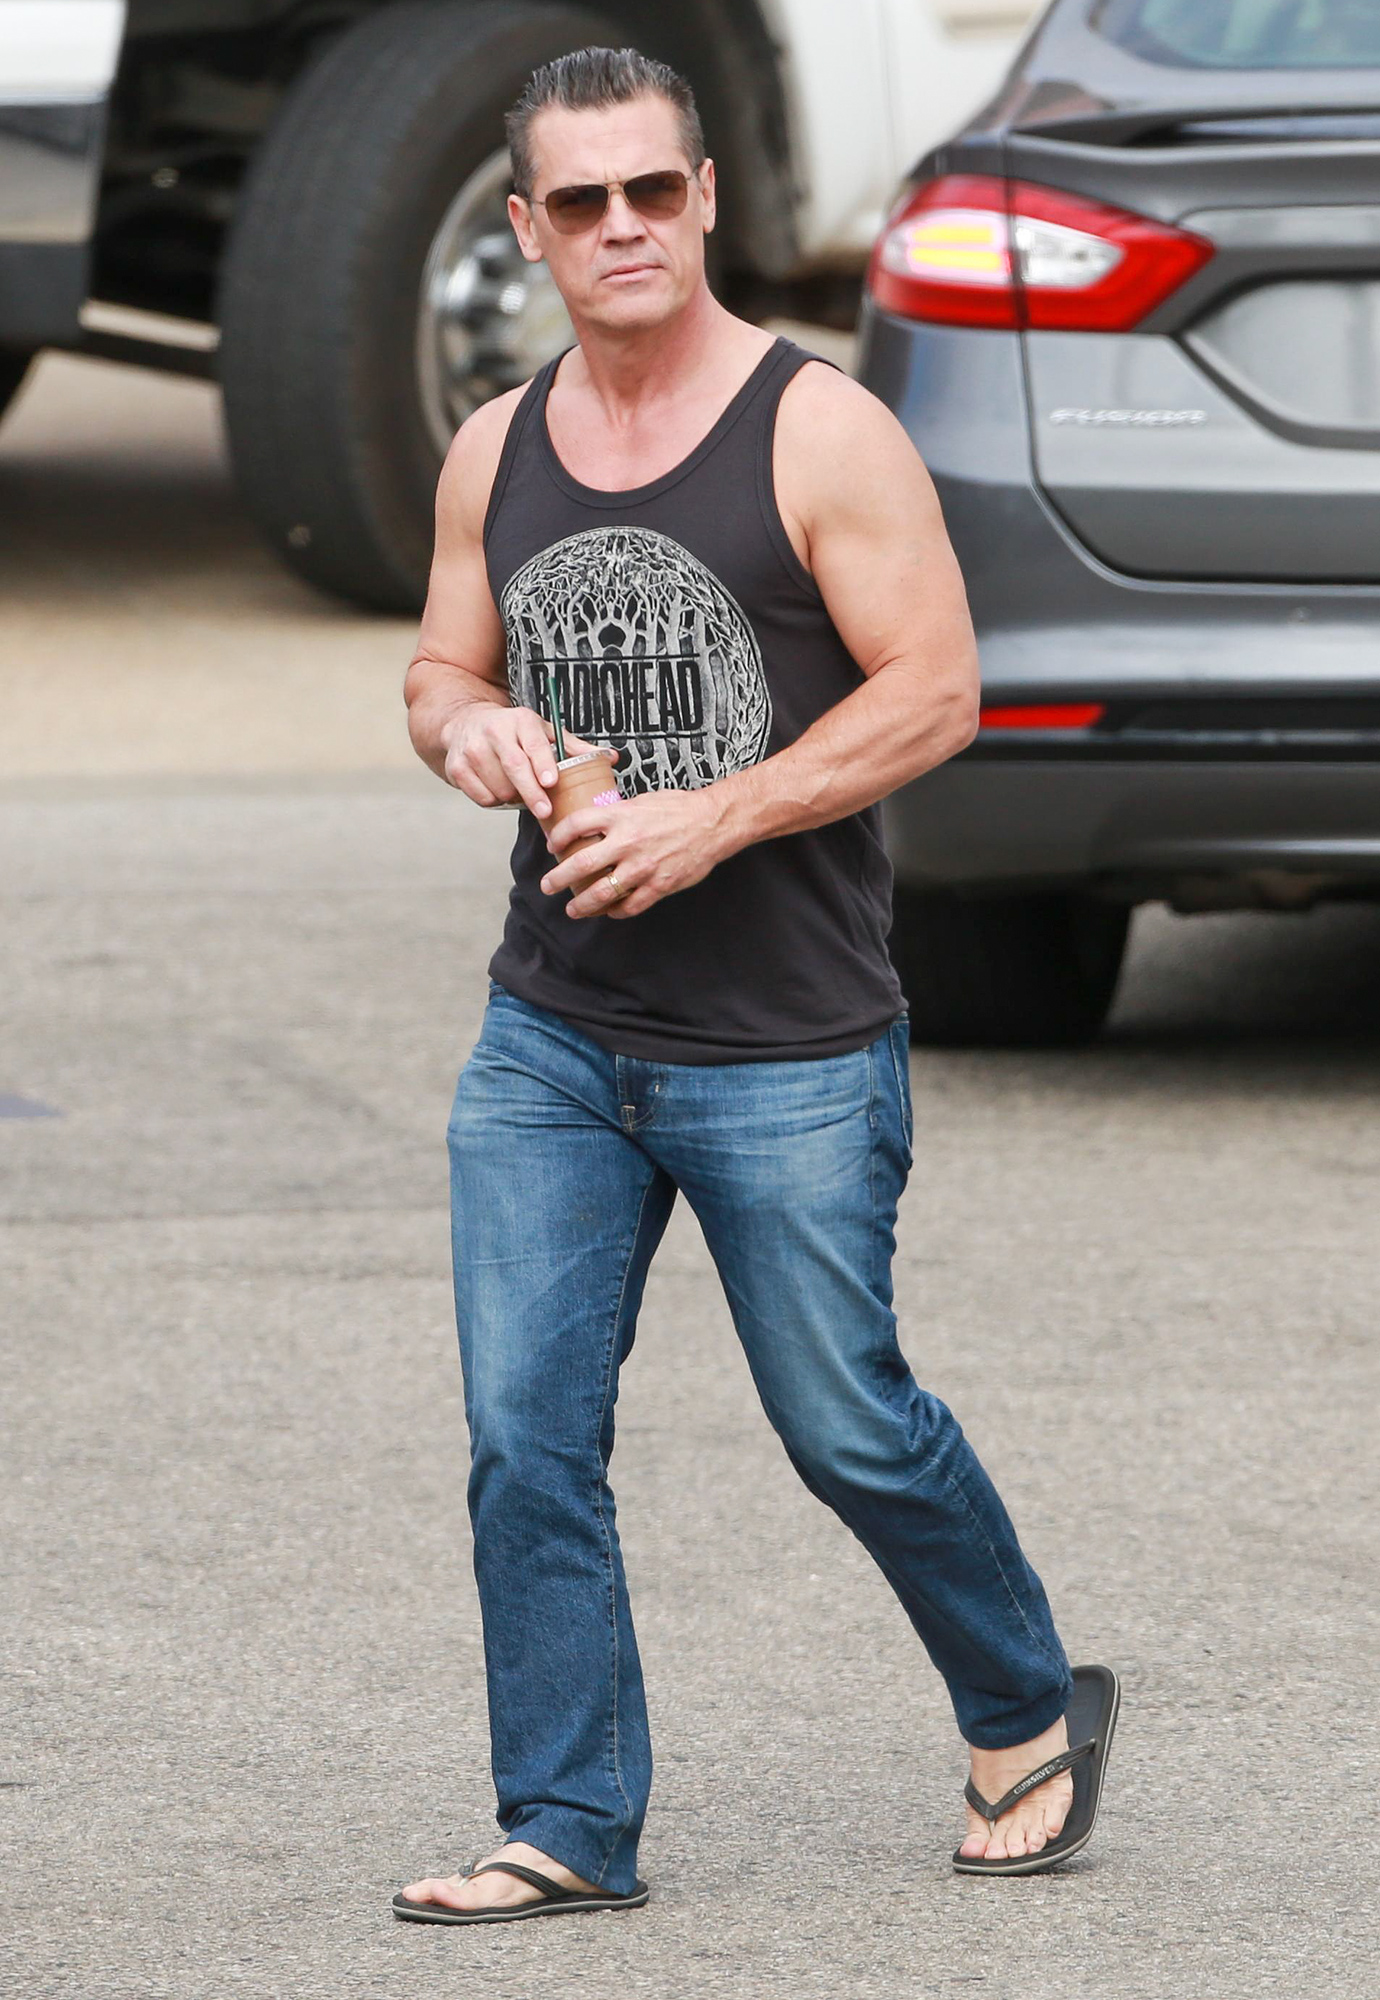 EXCLUSIVE: Josh Brolin shows off his toned biceps as he is spotted grabbing a smoothie with wife Kathryn Boyd in Malibu